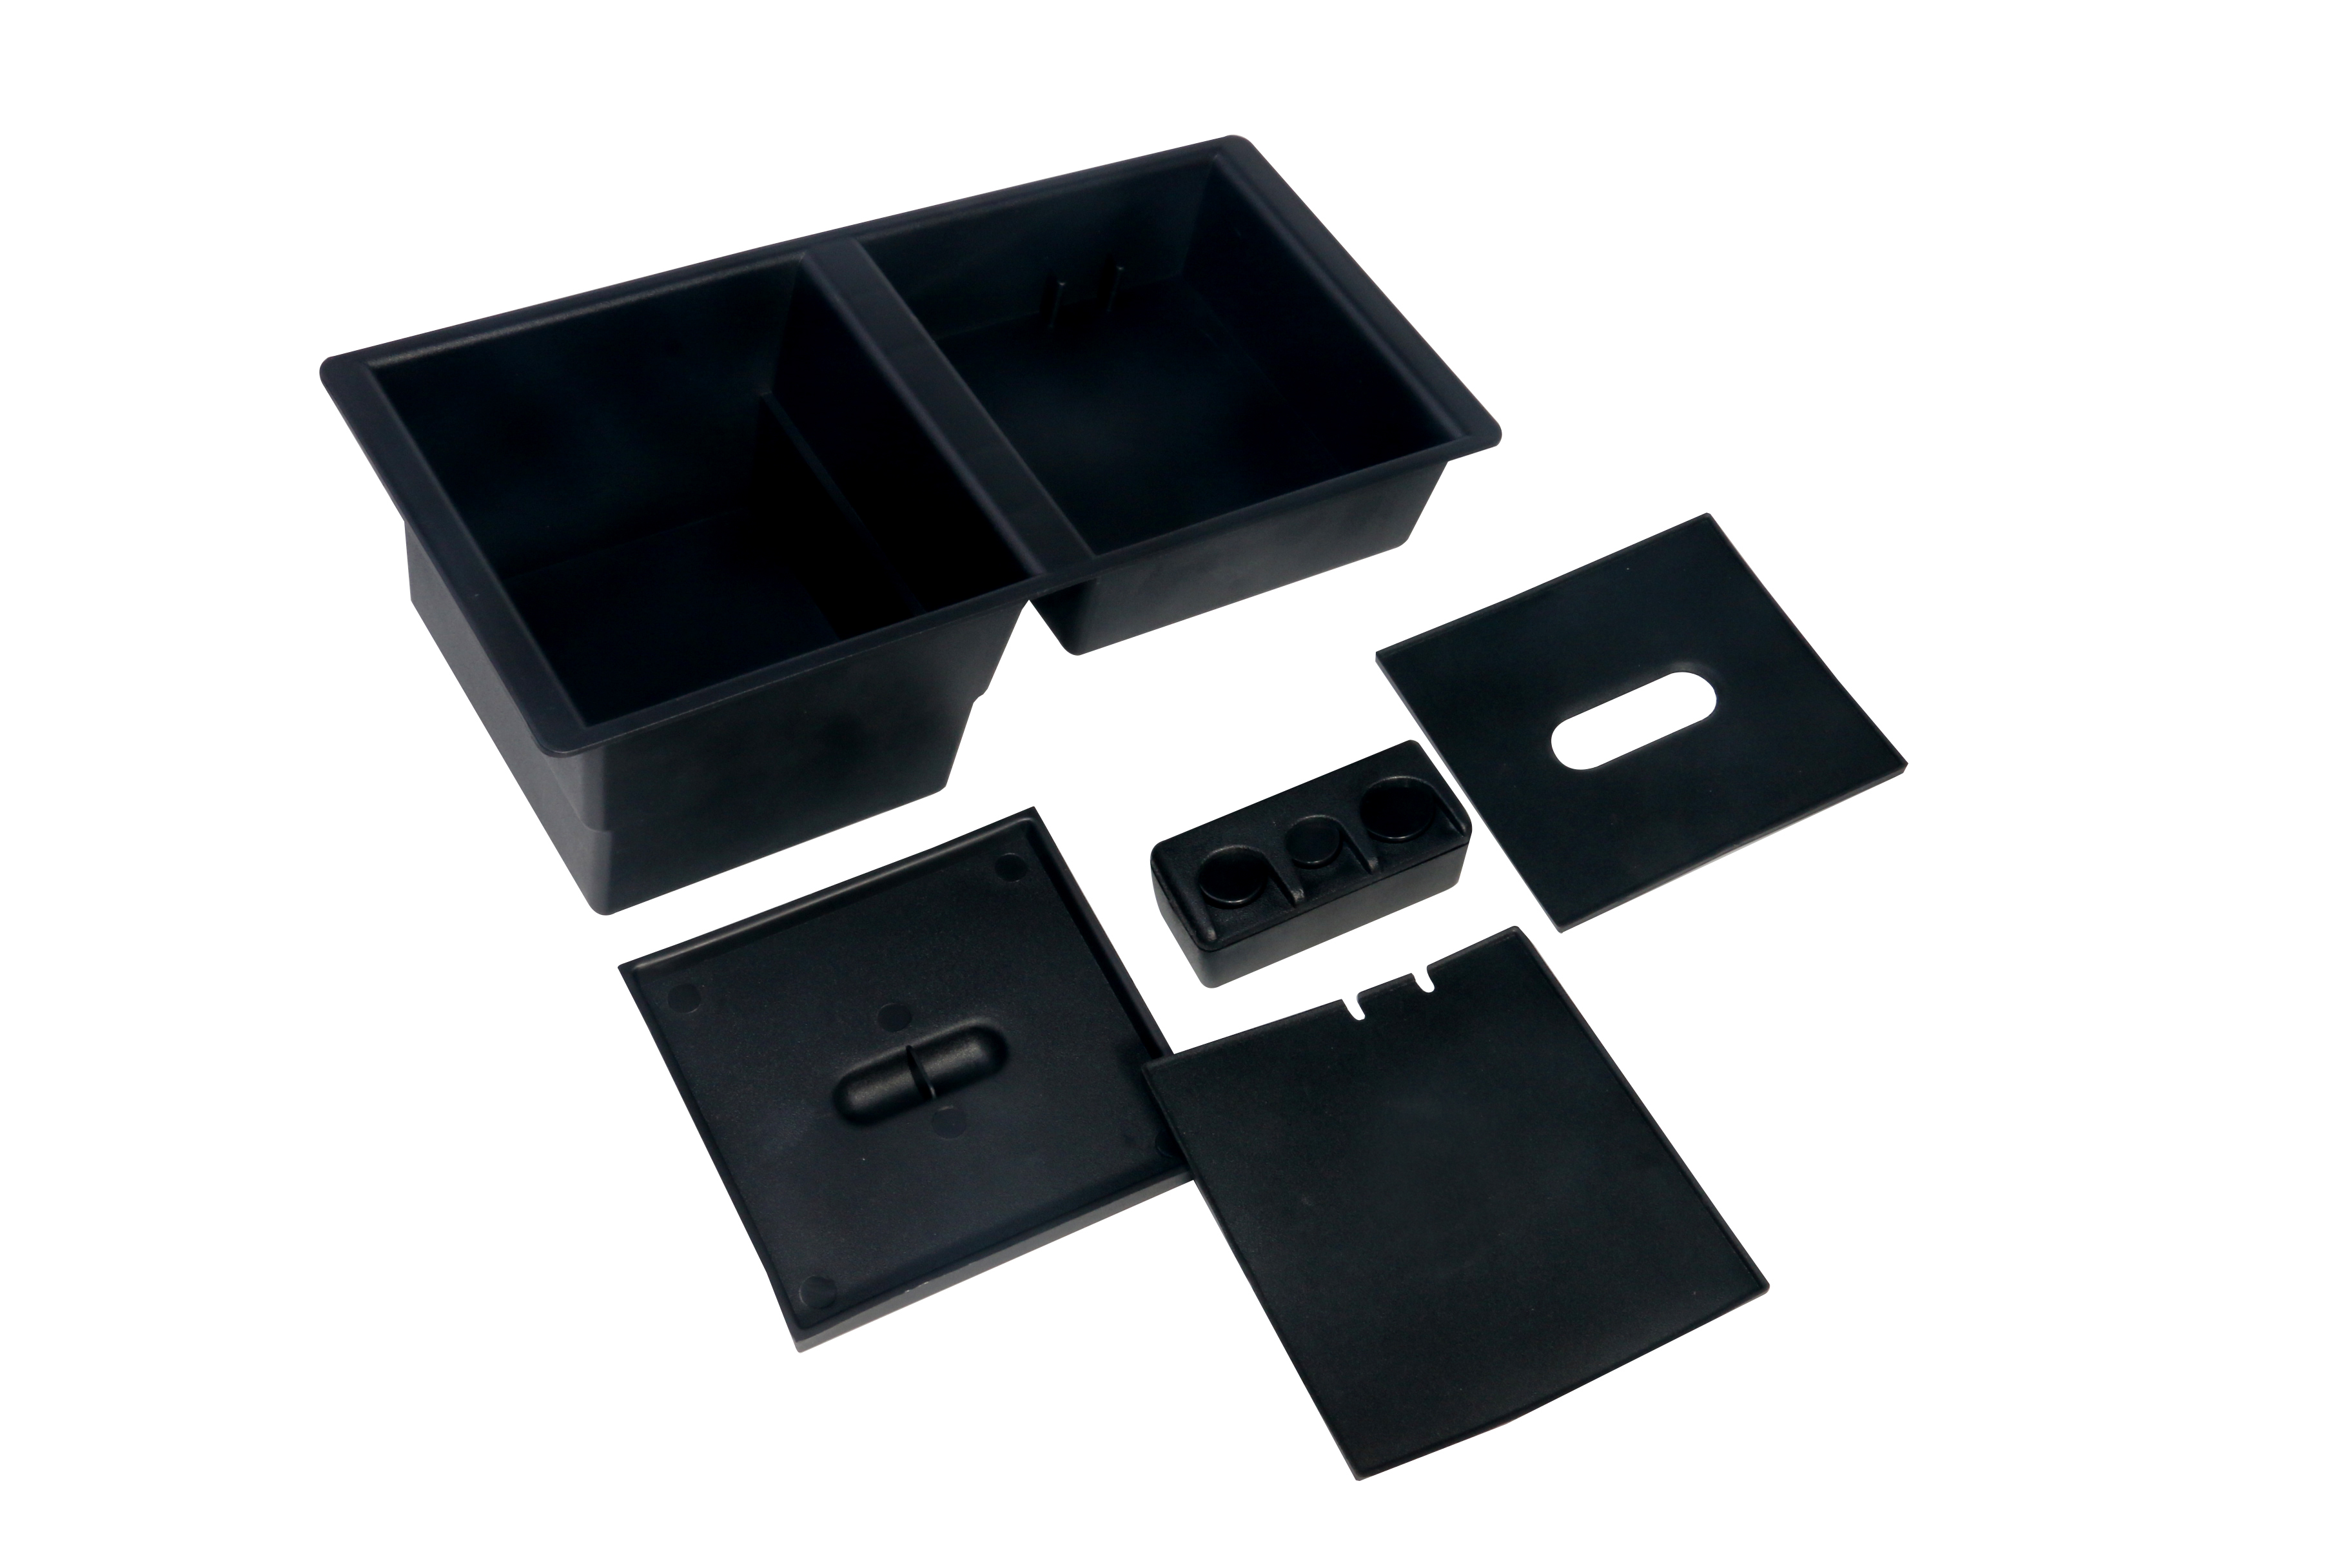 Center Console Organizer Tray - Replaces part 22817343 - Fits 2014-2019 GM Trucks & SUVs Image